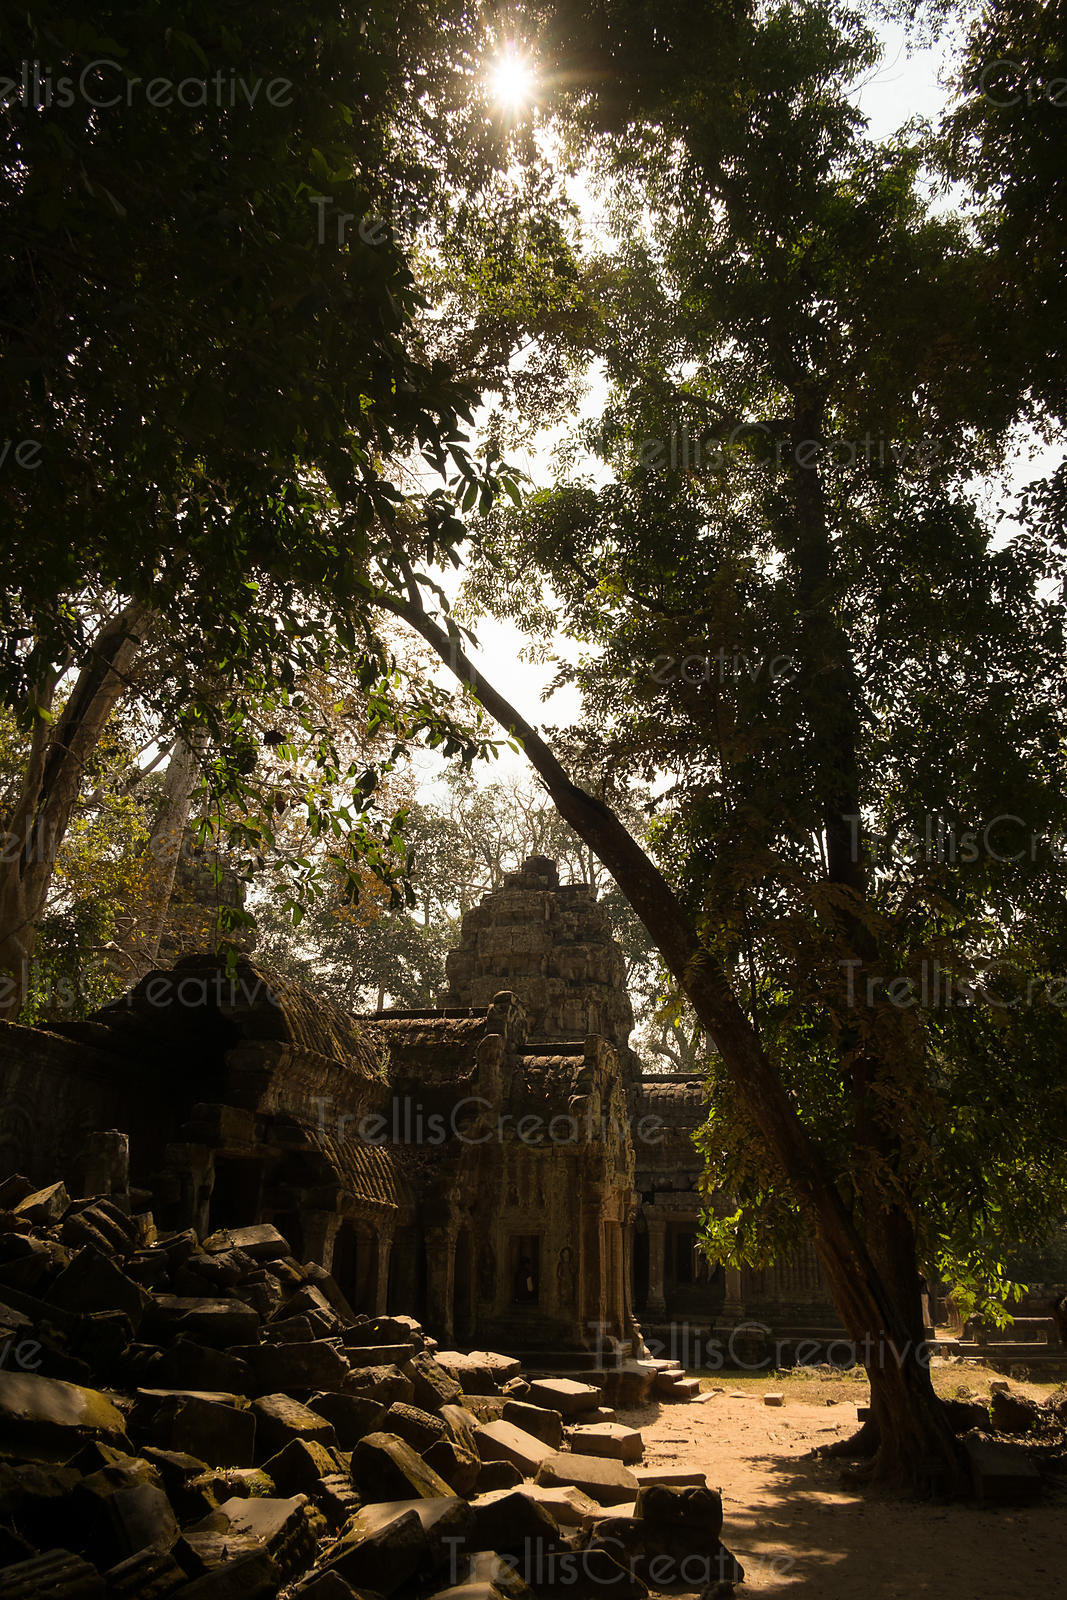 Tress with the old temple ruins at Angkor Wat